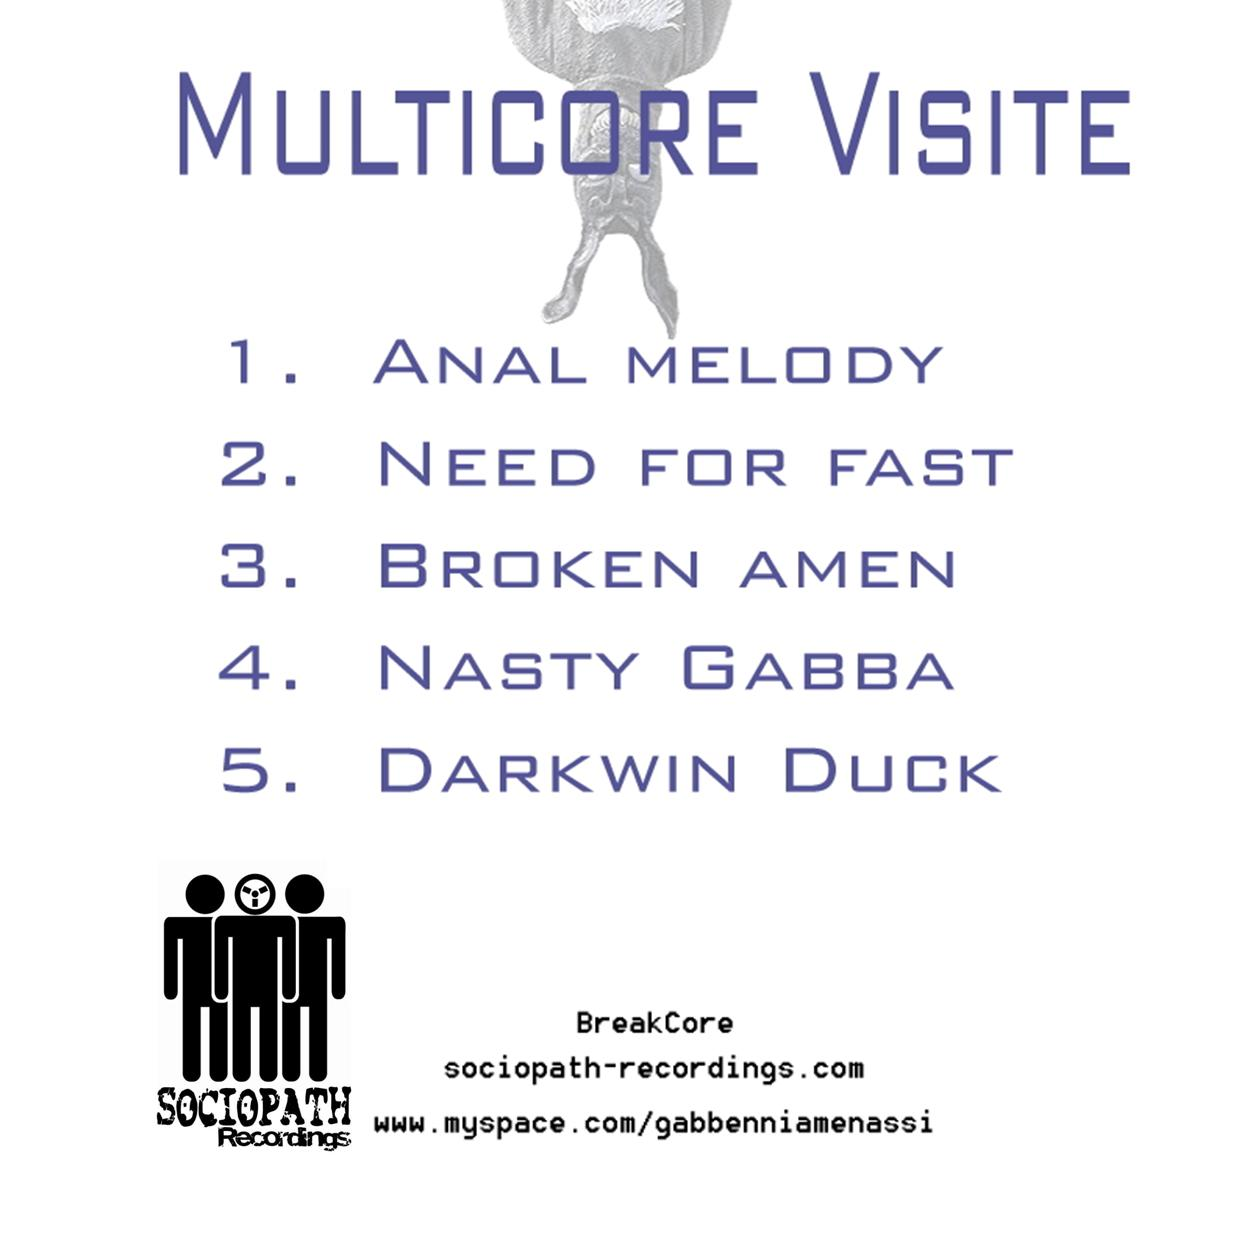 Gabbenni Amenassi - MultiCore Visite.Breakcore, MashUp, Anal melody, Need for fast, Broken amen, Nasty Gabba, Darkwin Duck